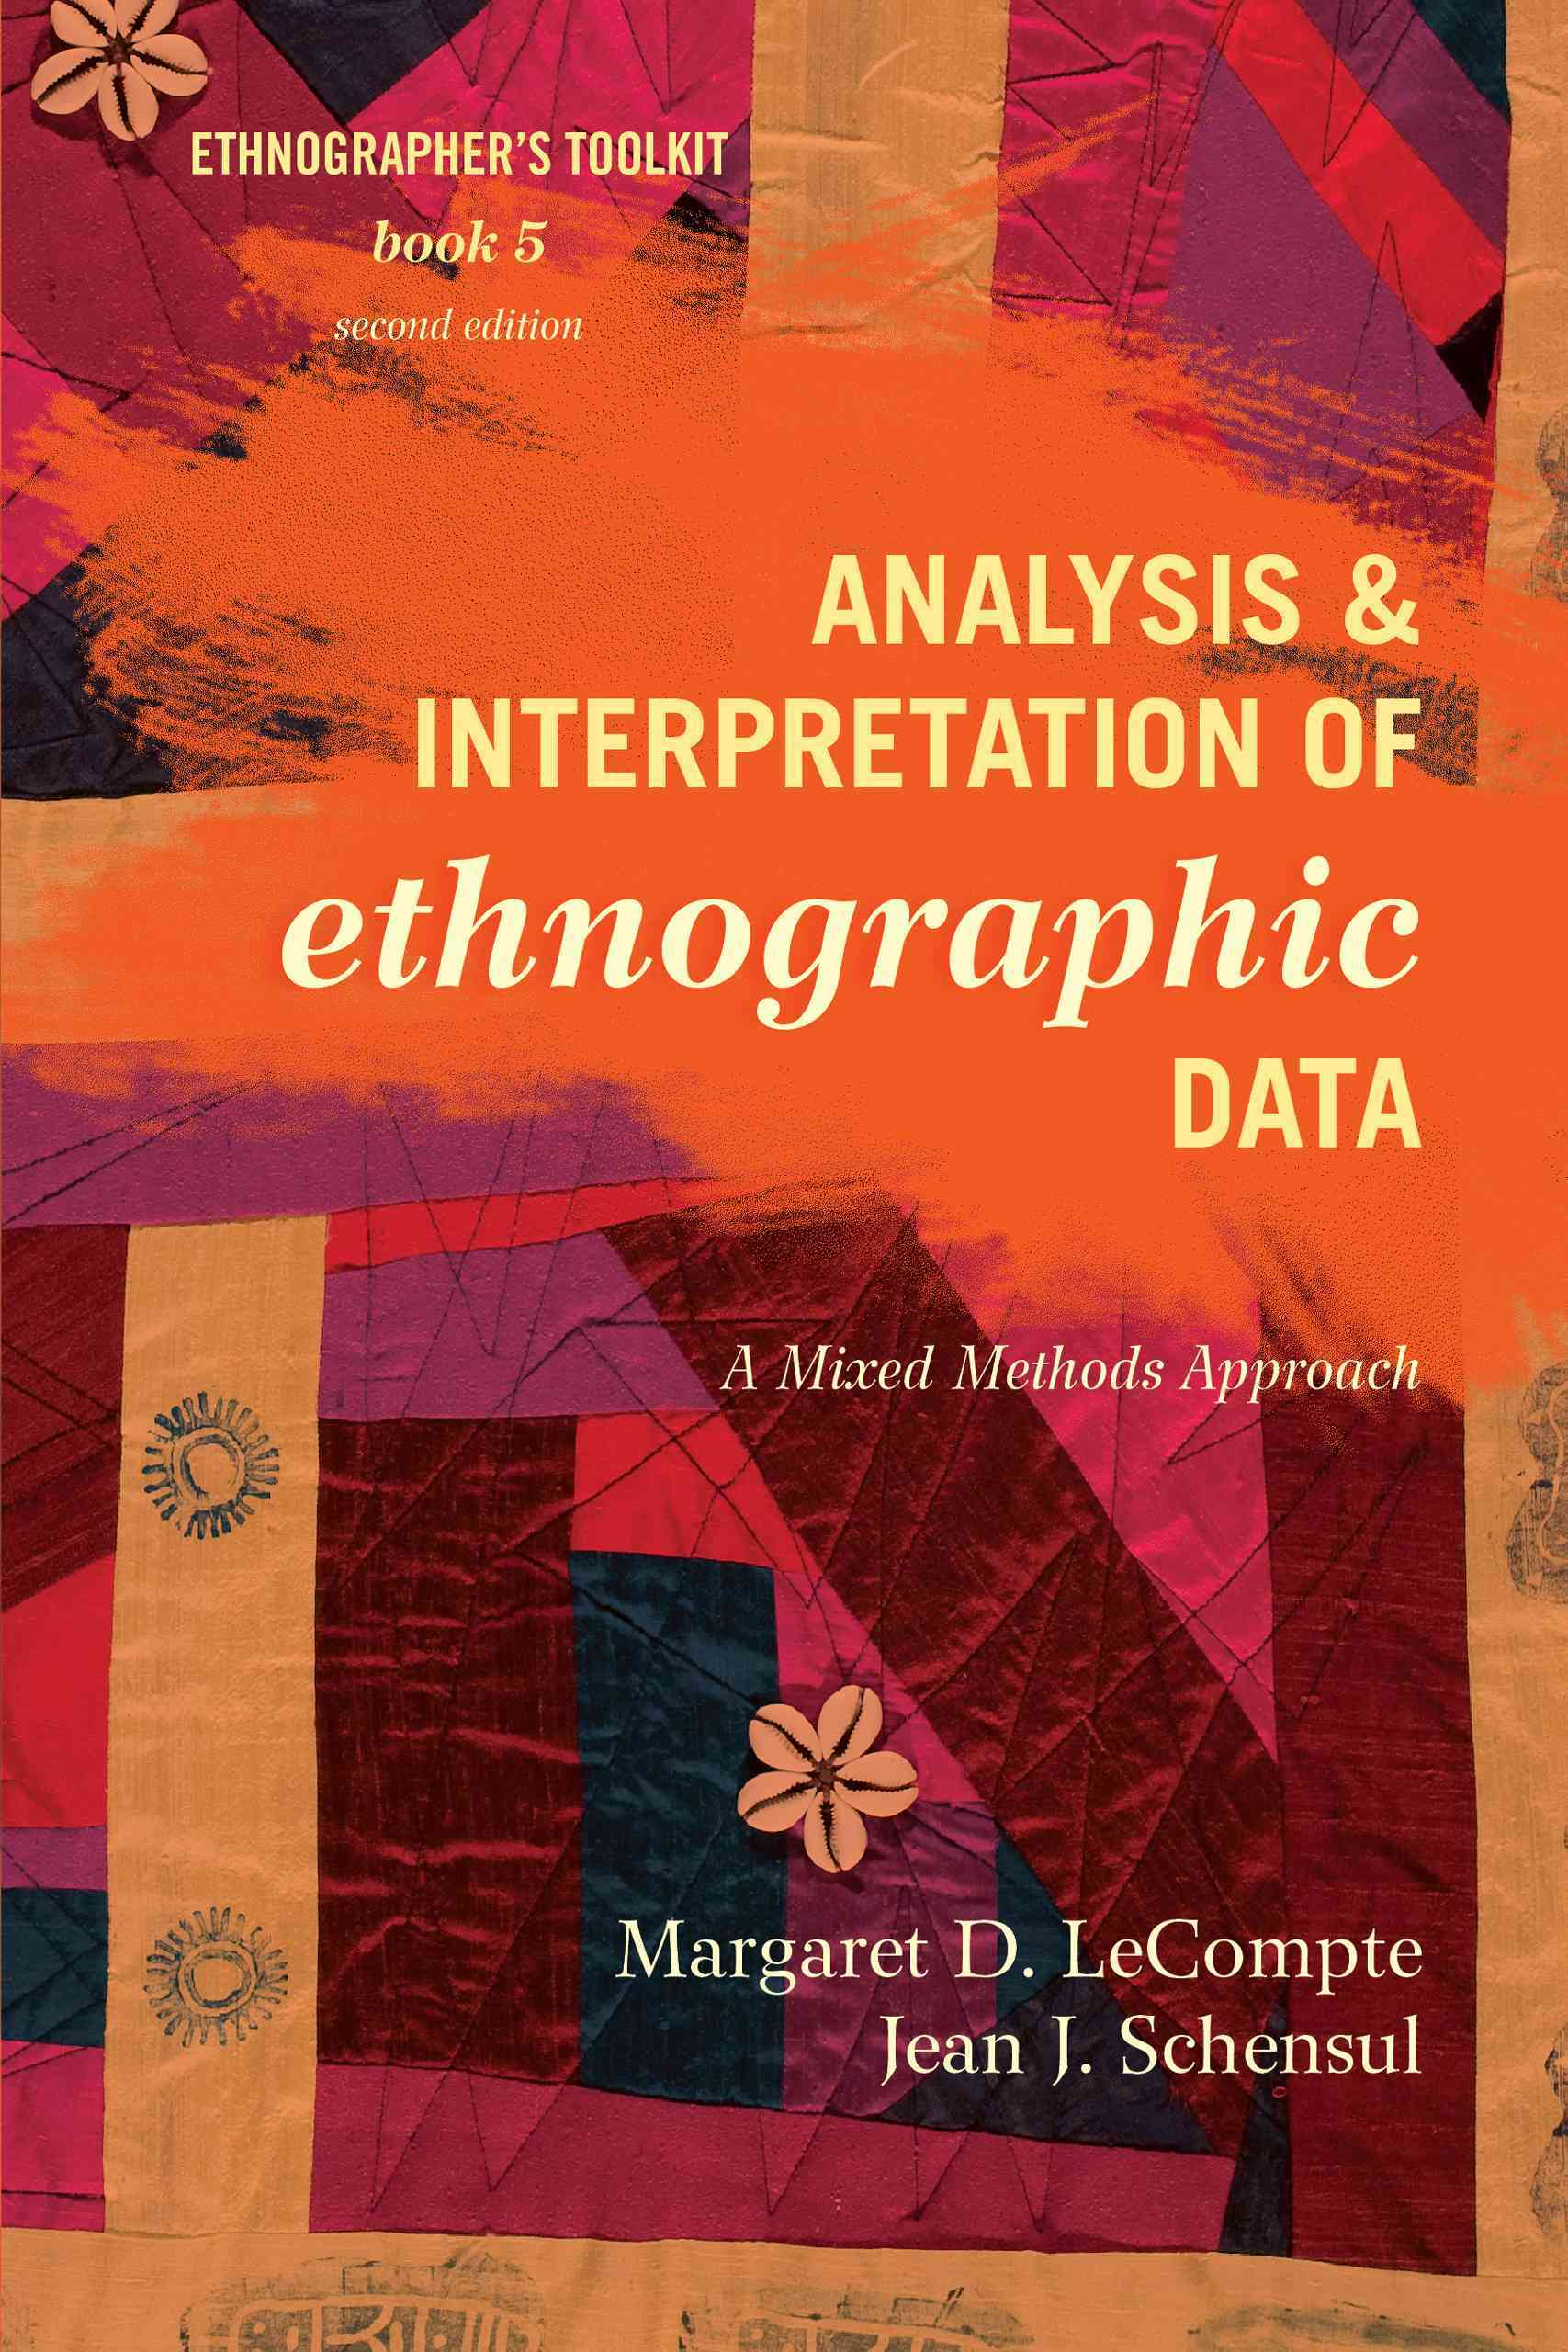 Analysis and Interpretation of Ethnographic Data By Lecompte, Margaret D./ Schensul, Jean J.